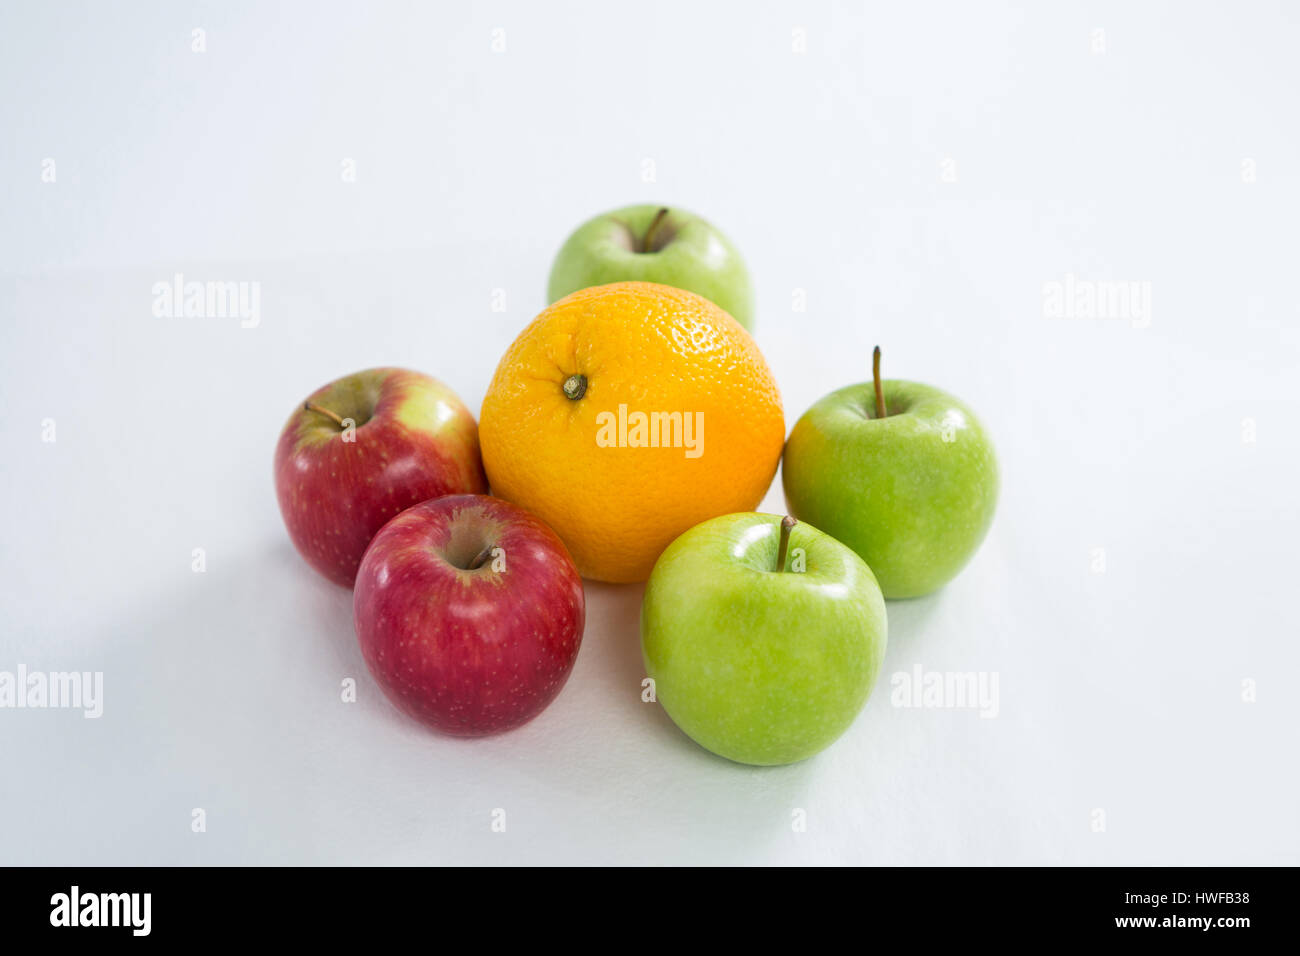 Close-up of oranges, red apples and green apples o white background - Stock Image